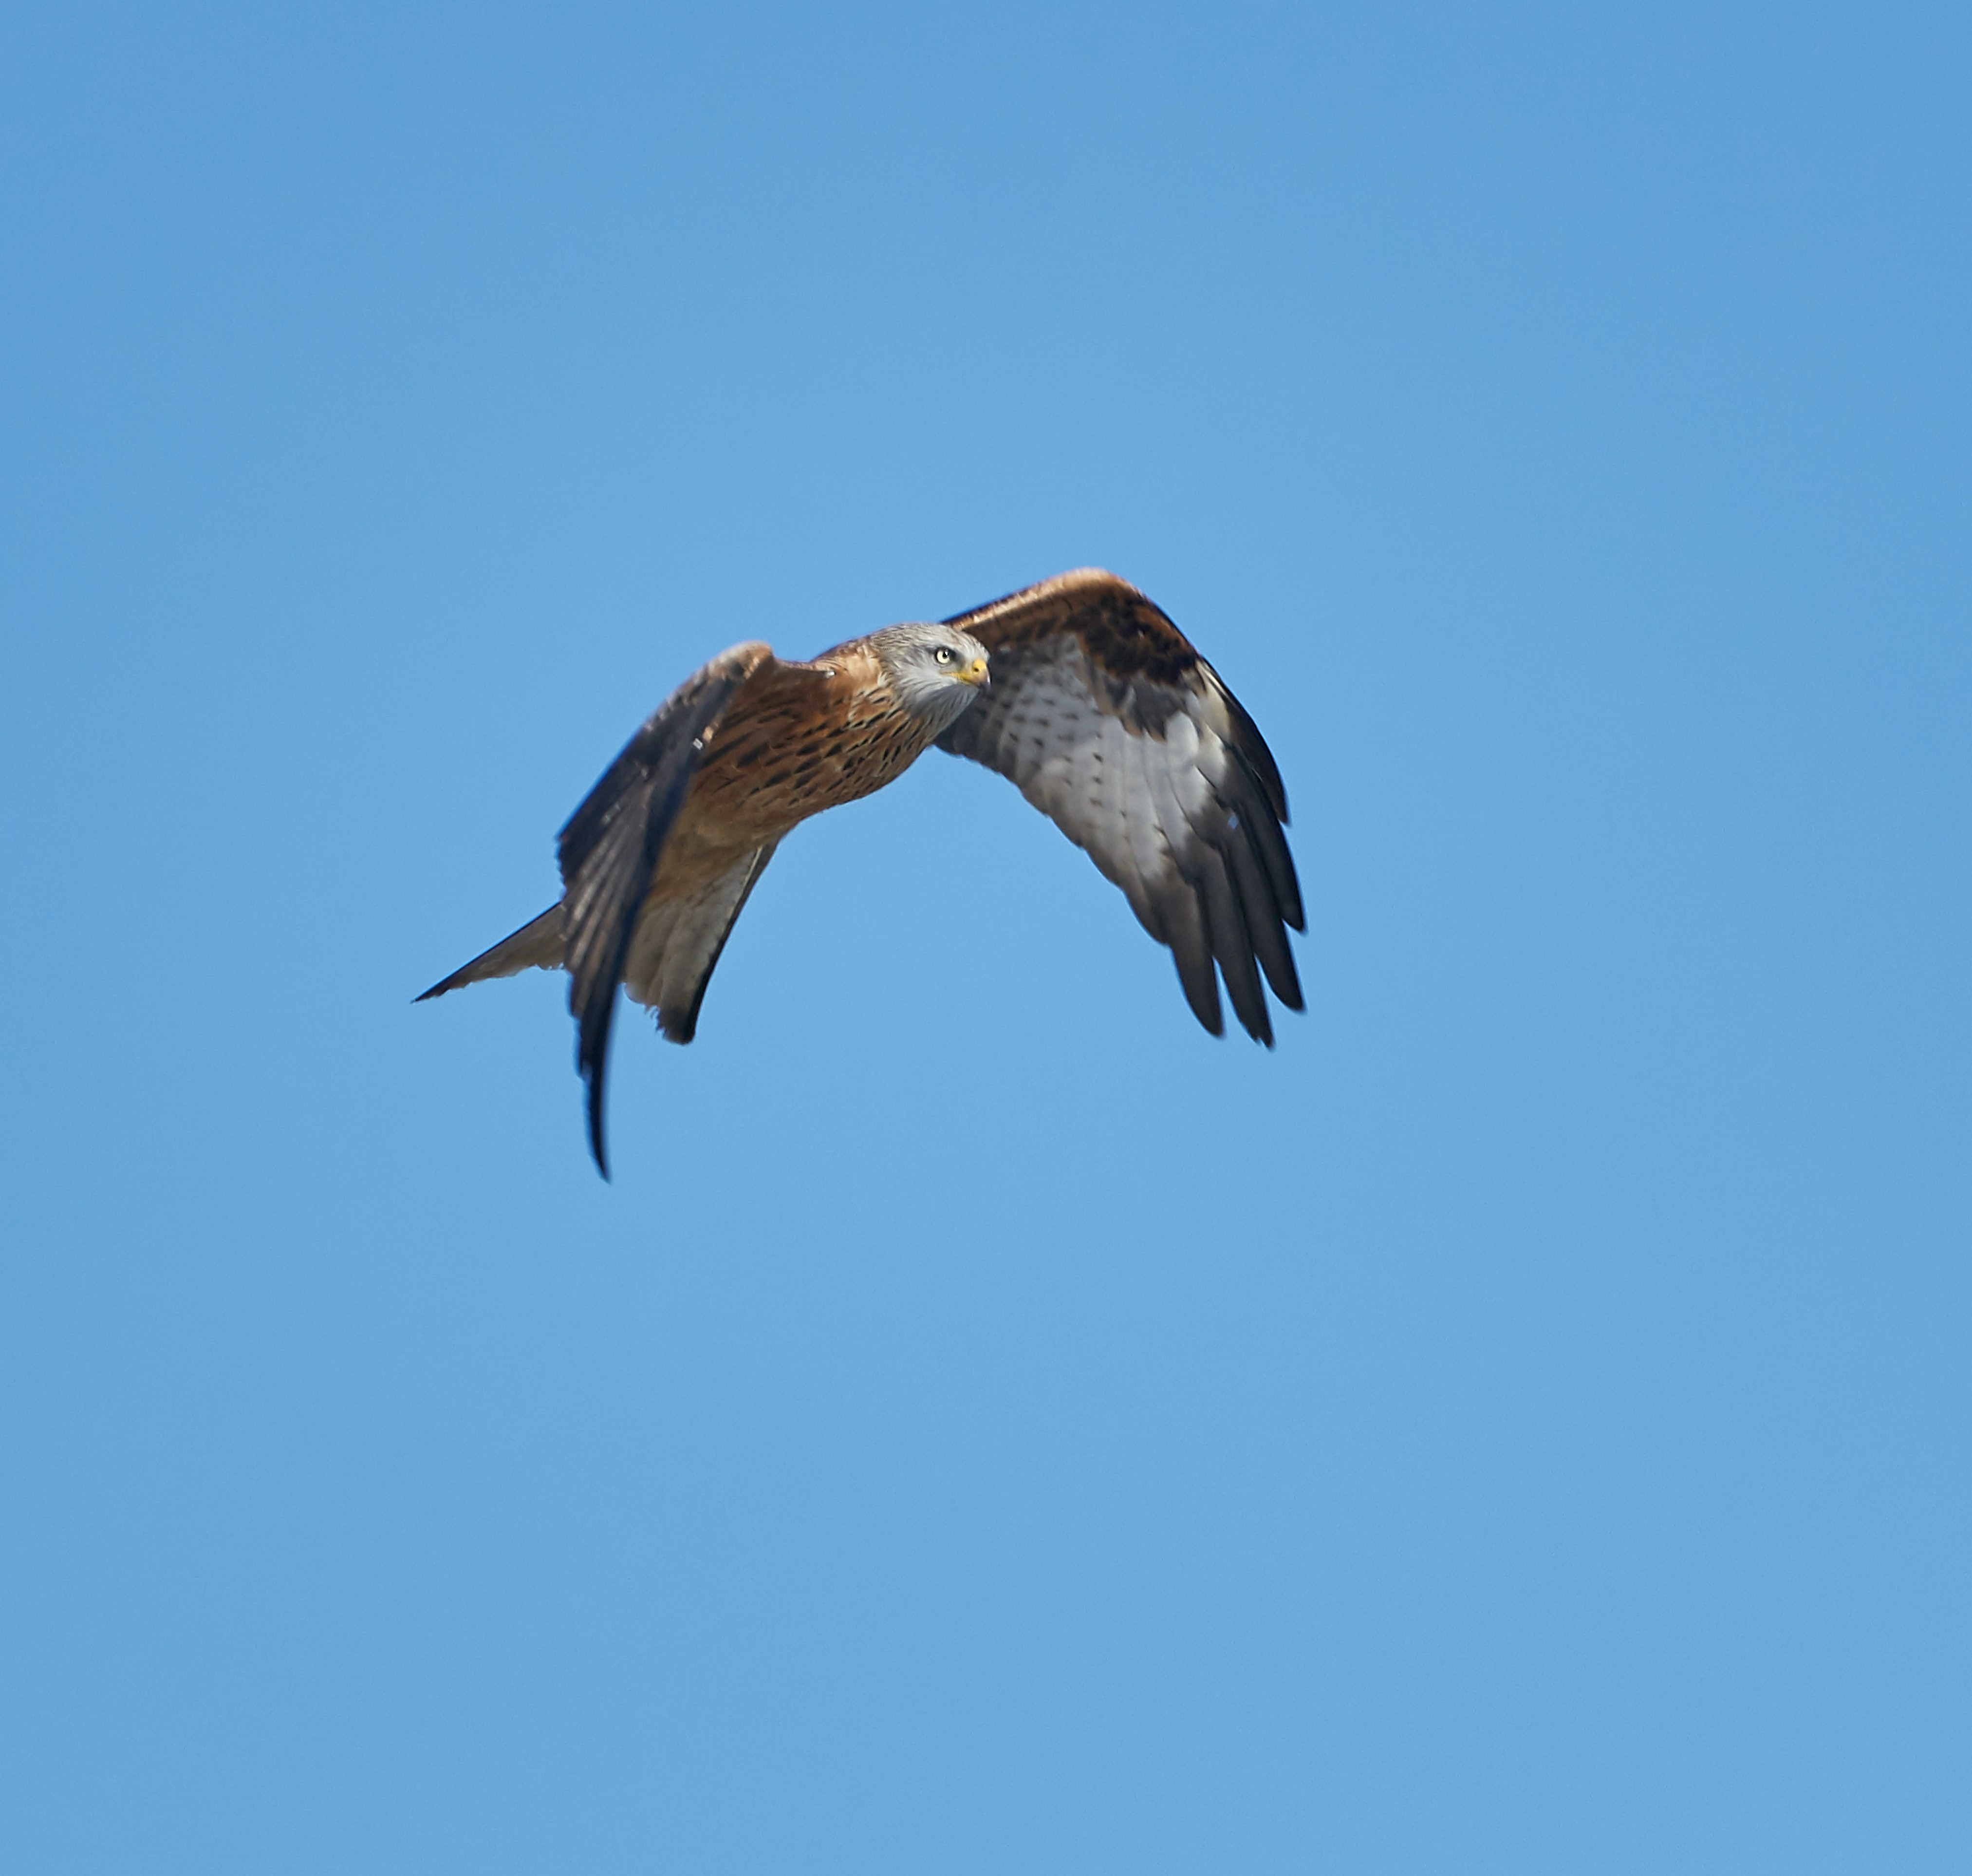 brown and black eagle in flight against blue background